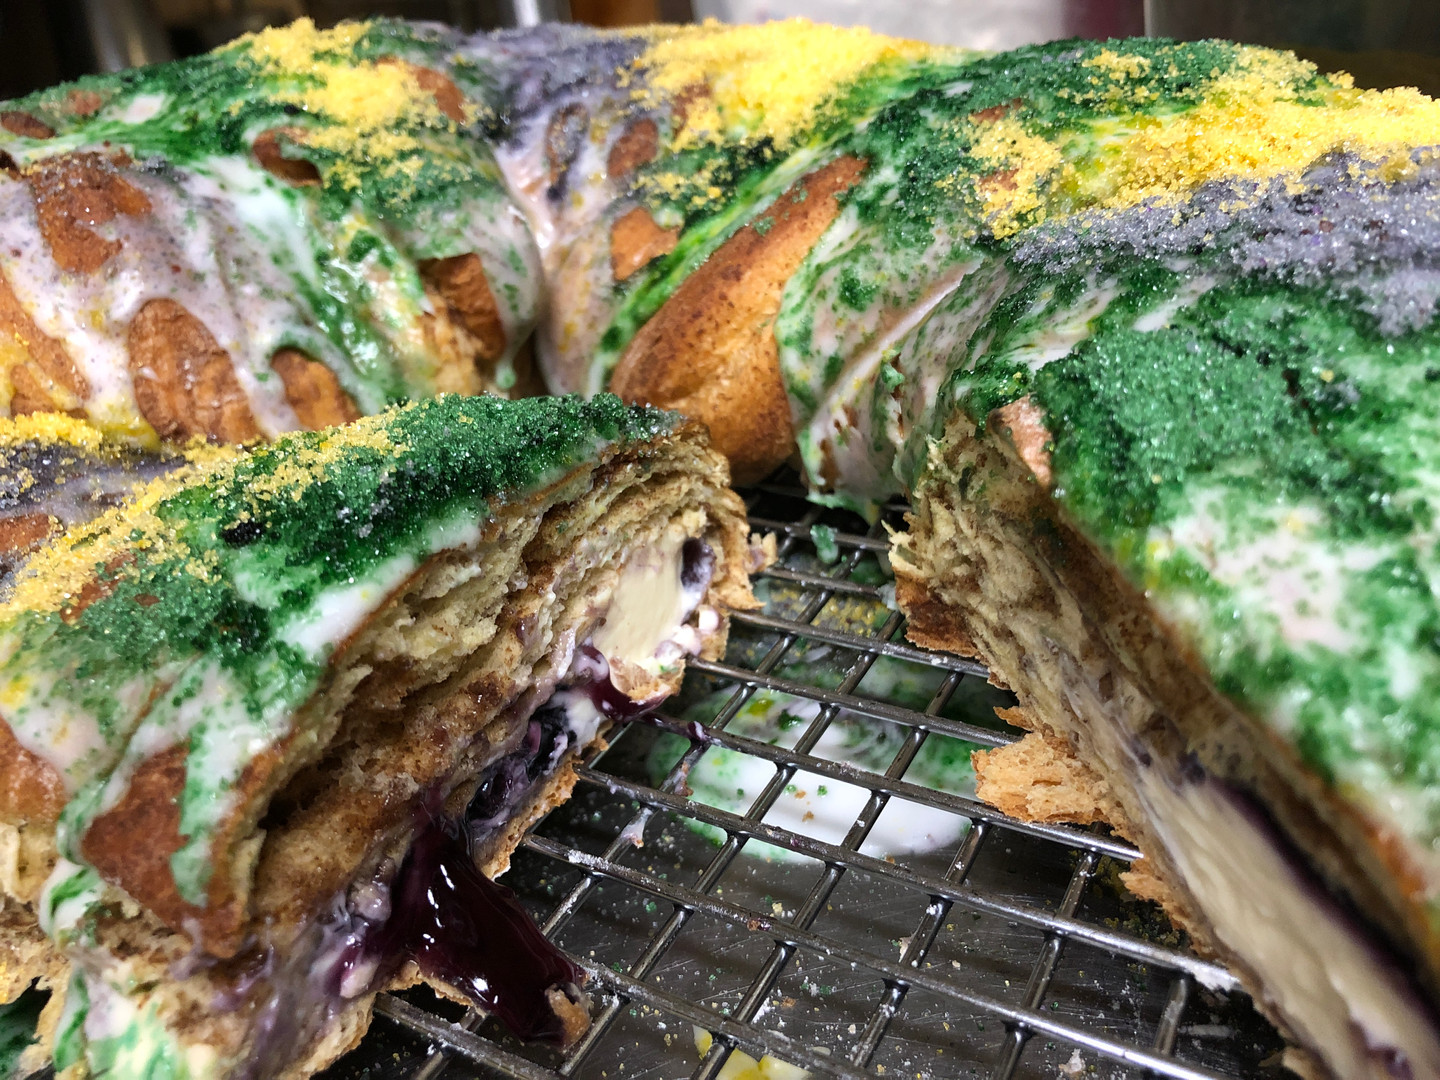 One of our delicious King Cakes oozing goodness!